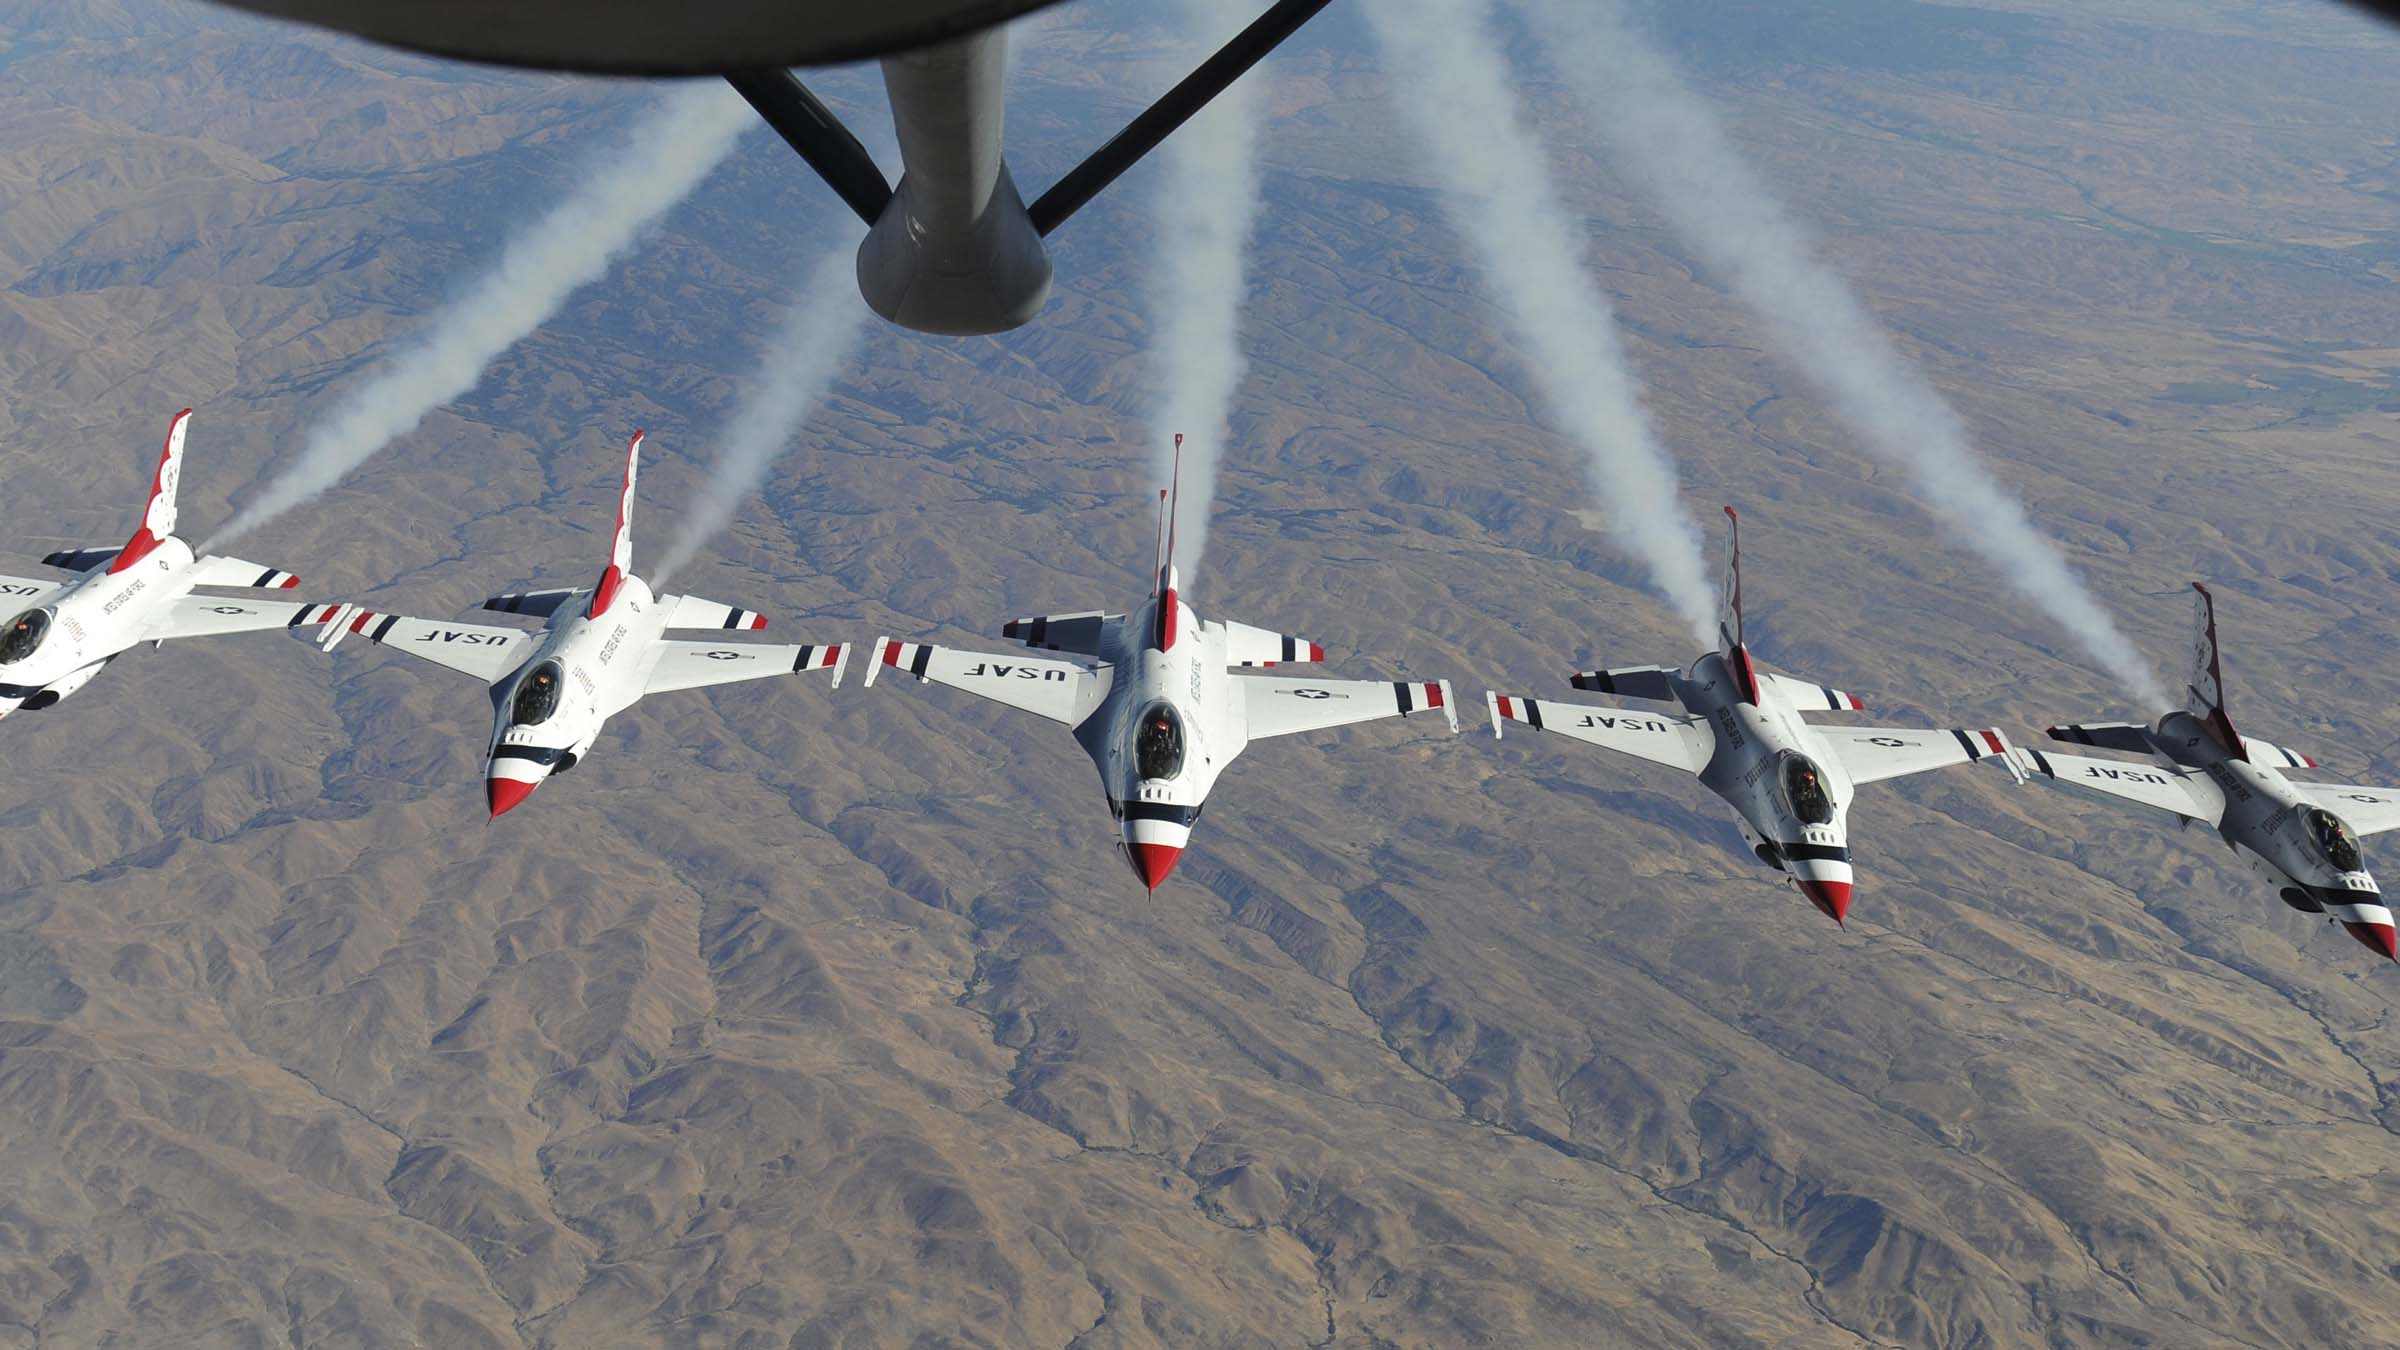 F-16 falcons fly in a row over mountains